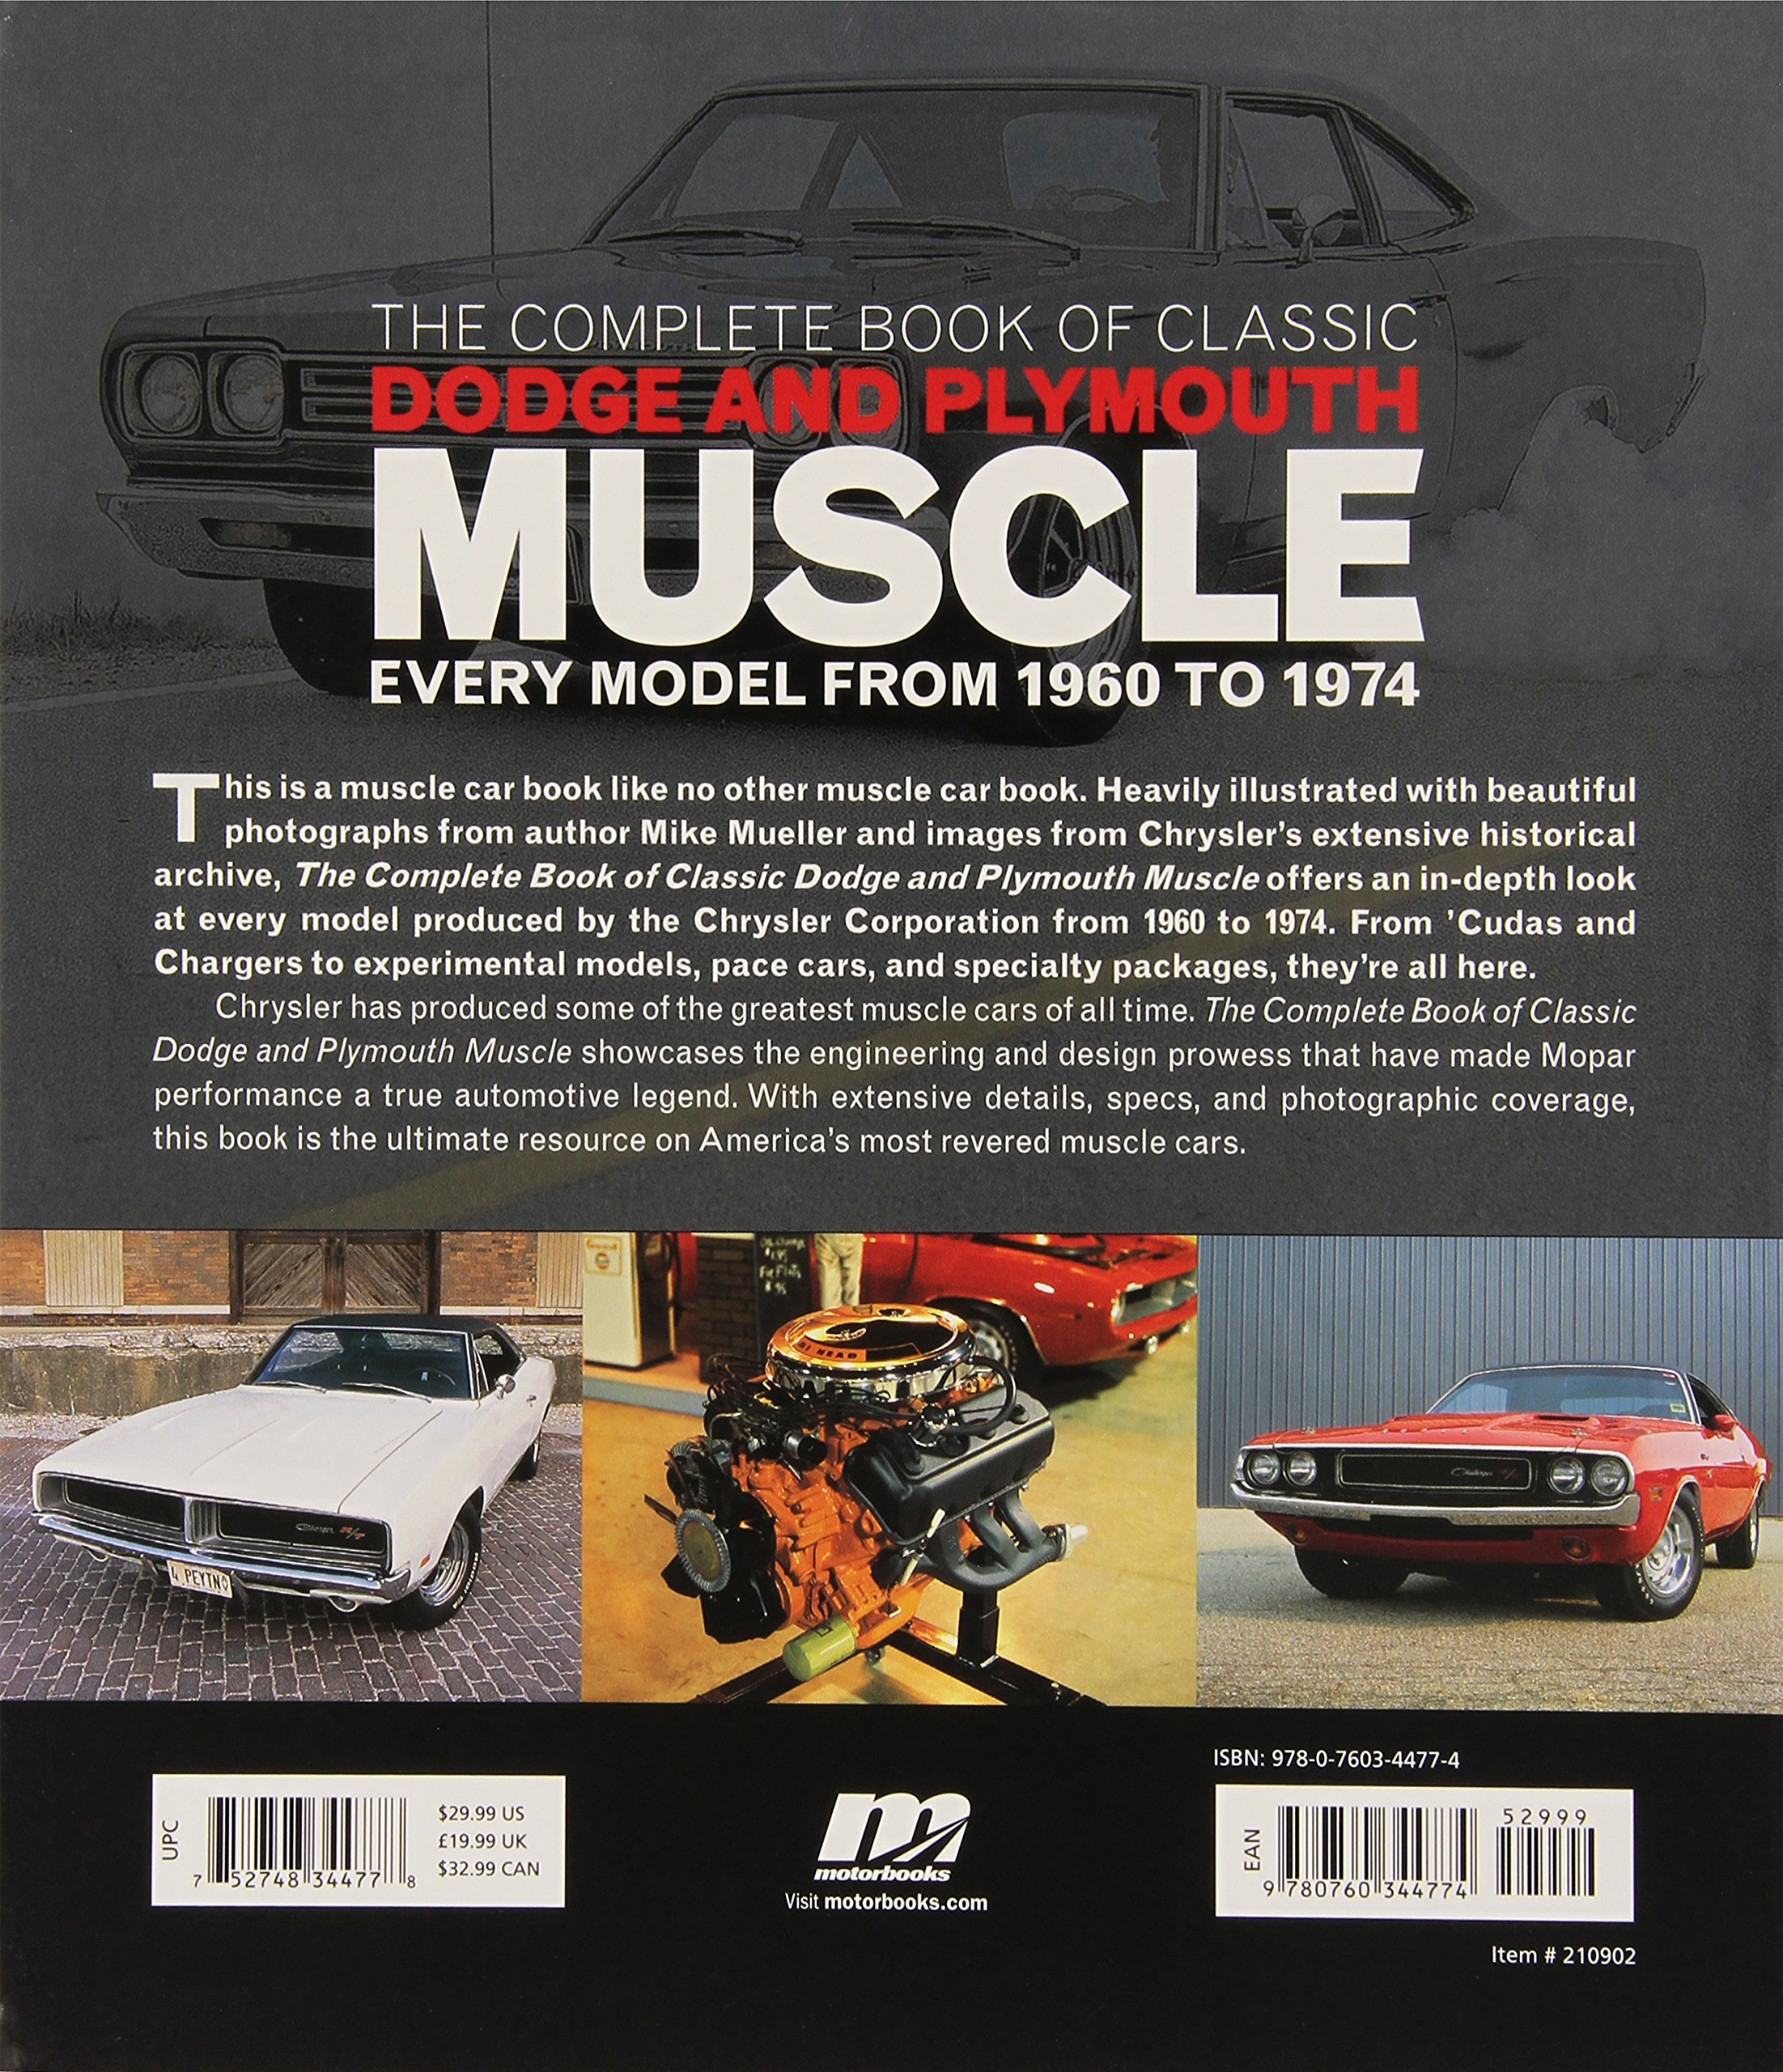 The Complete Book of Classic Dodge and Plymouth Muscle: Every Model from 1960 to 1974 (Complete Book Series) by Brand: Motorbooks (Image #3)